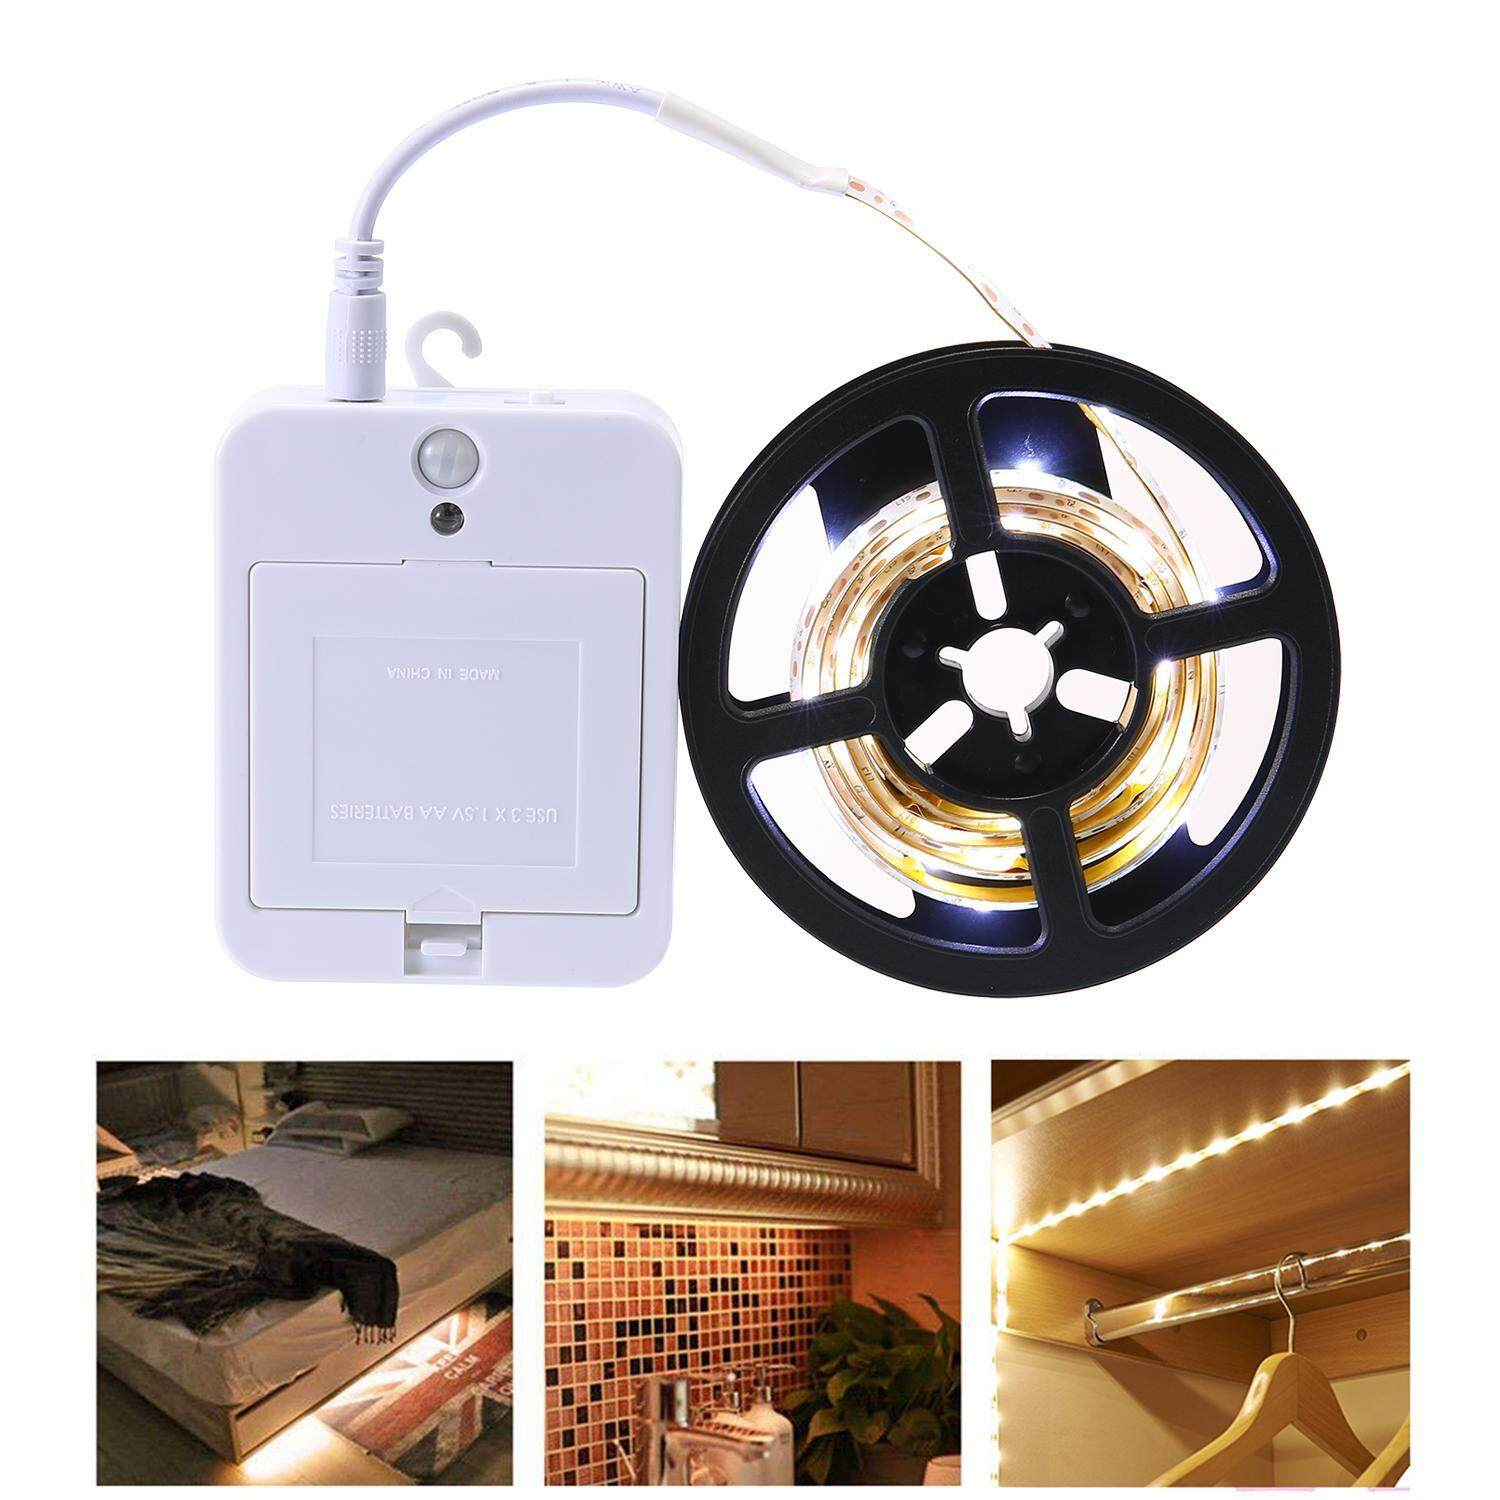 Teepao 1M LED Strip Night Light - Motion Sensor Closet Light, Willed Motion Activated Under Cabinet Light with Dual Mode for Stair ,Under Bed,Closet Singapore